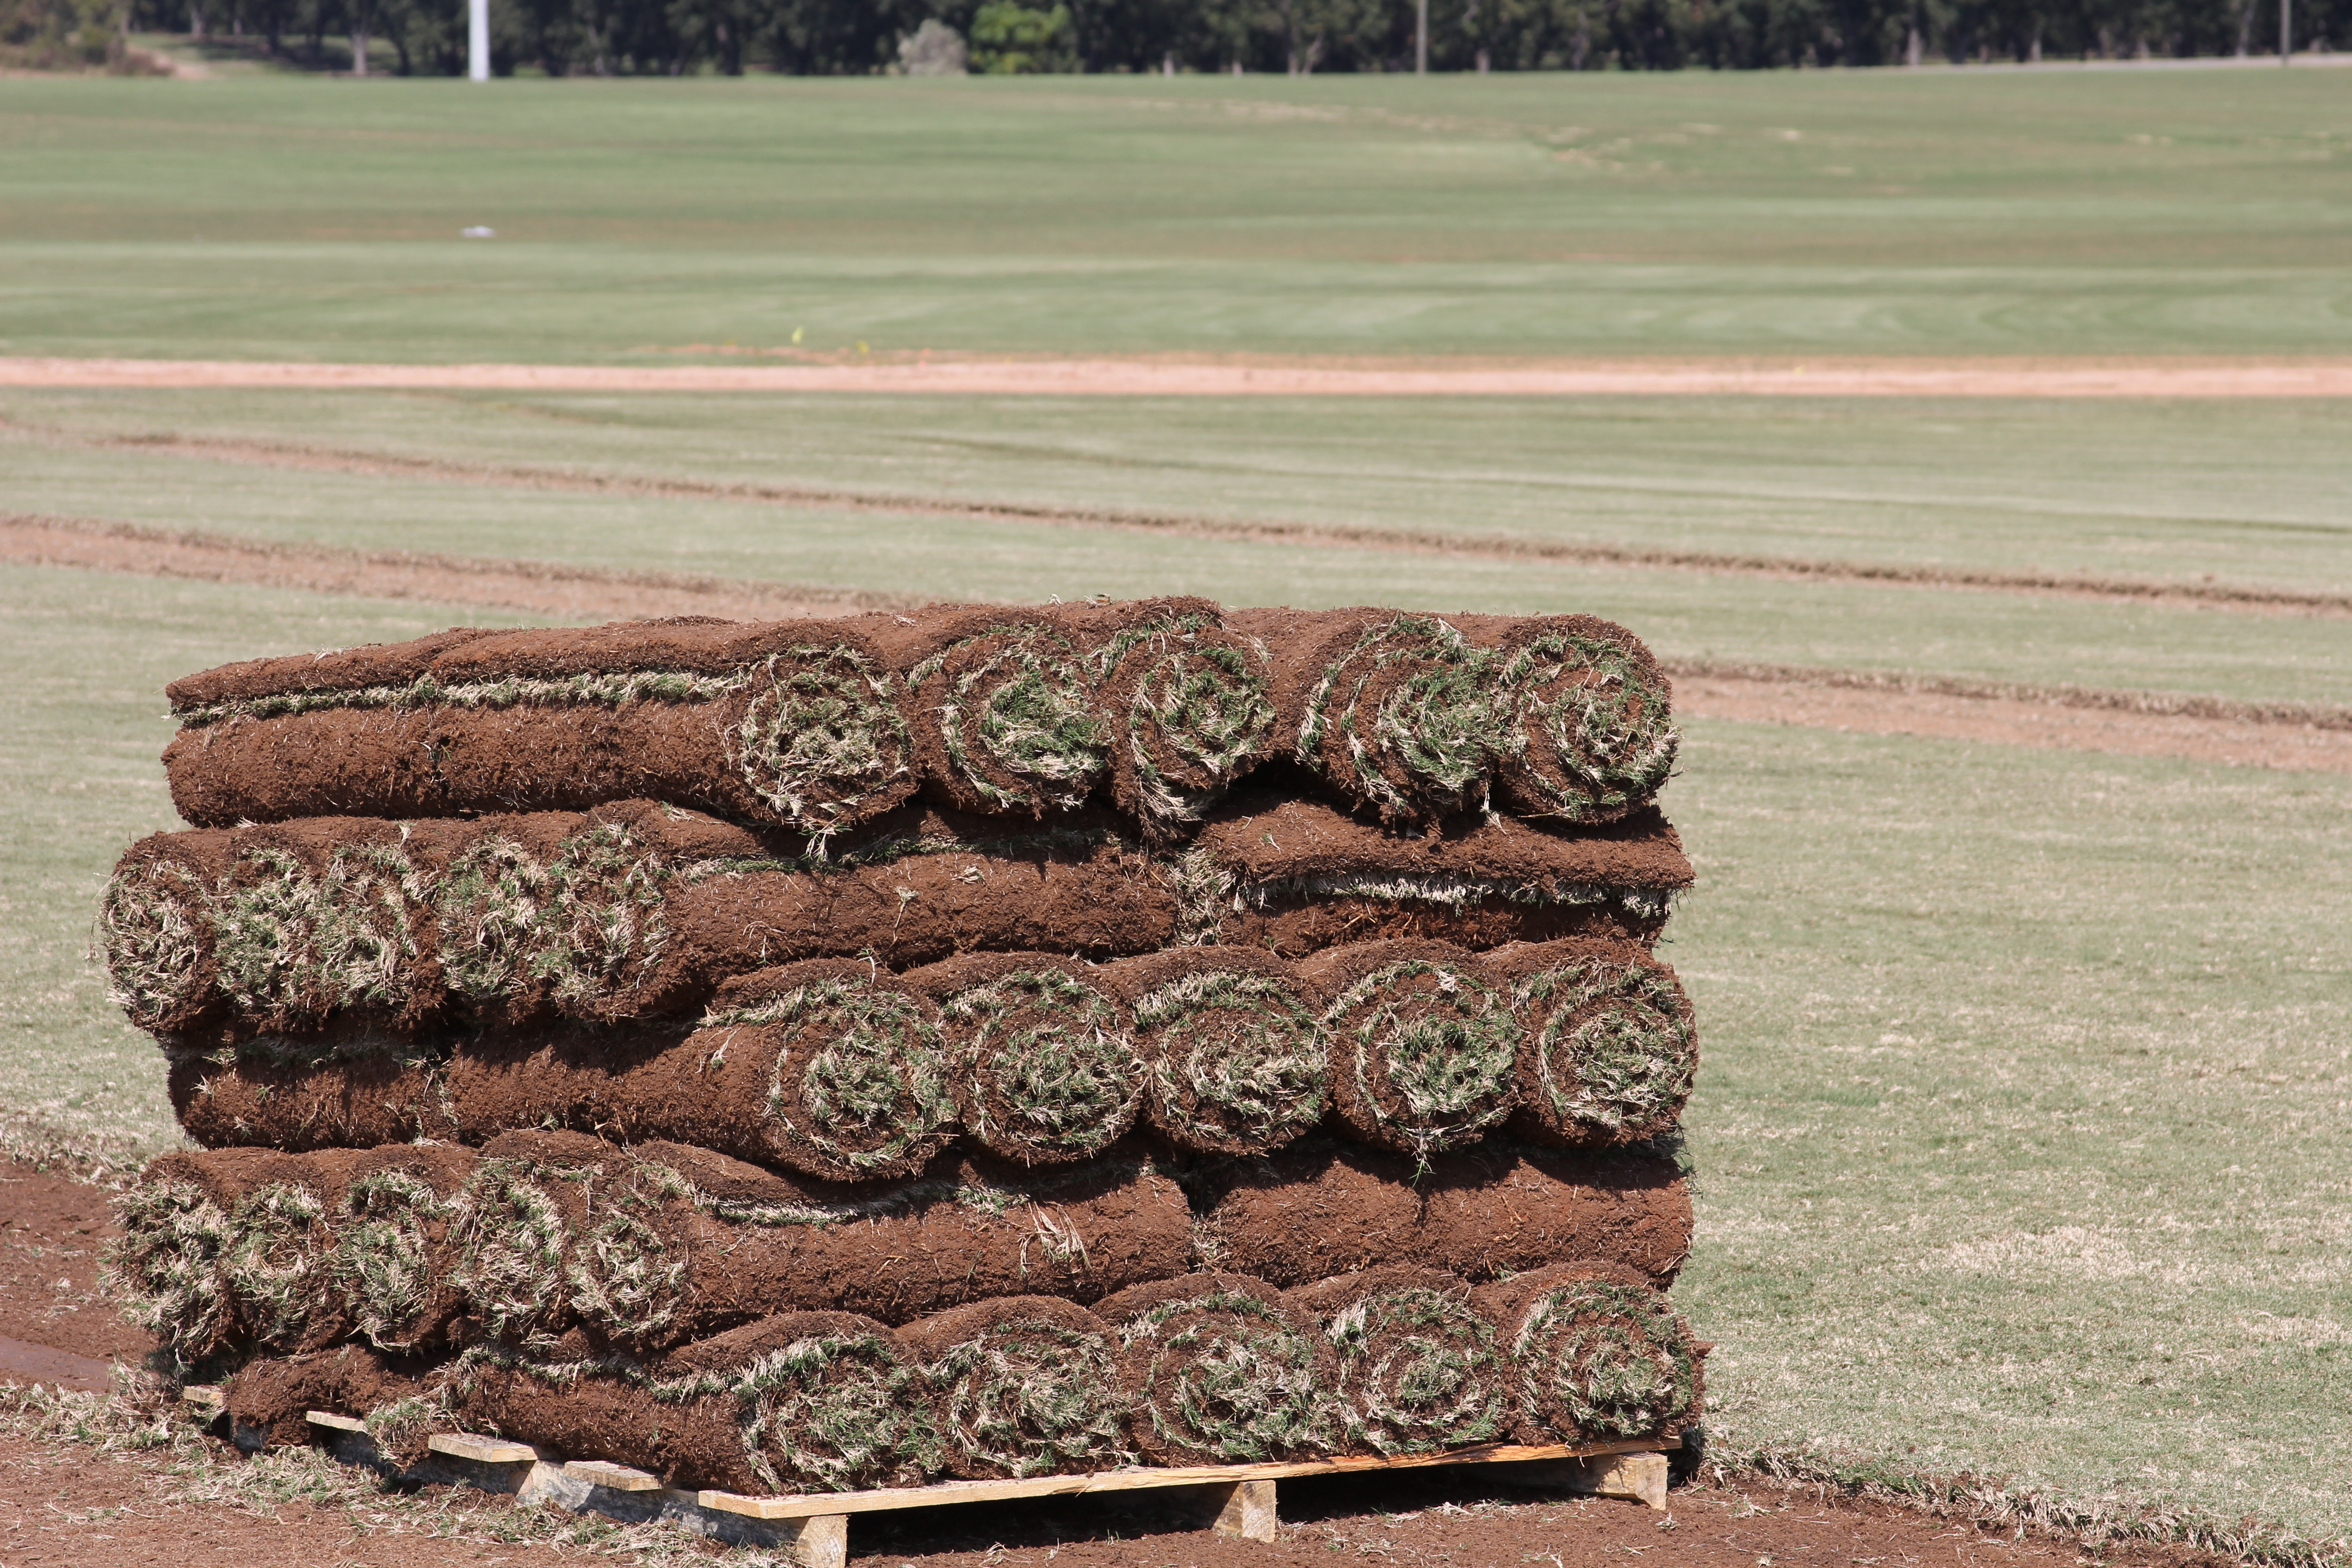 Price increases for sod this year could range from 2-8% over 2019 prices, according to a new survey of producers by UGA and the Georgia Urban Ag Council.